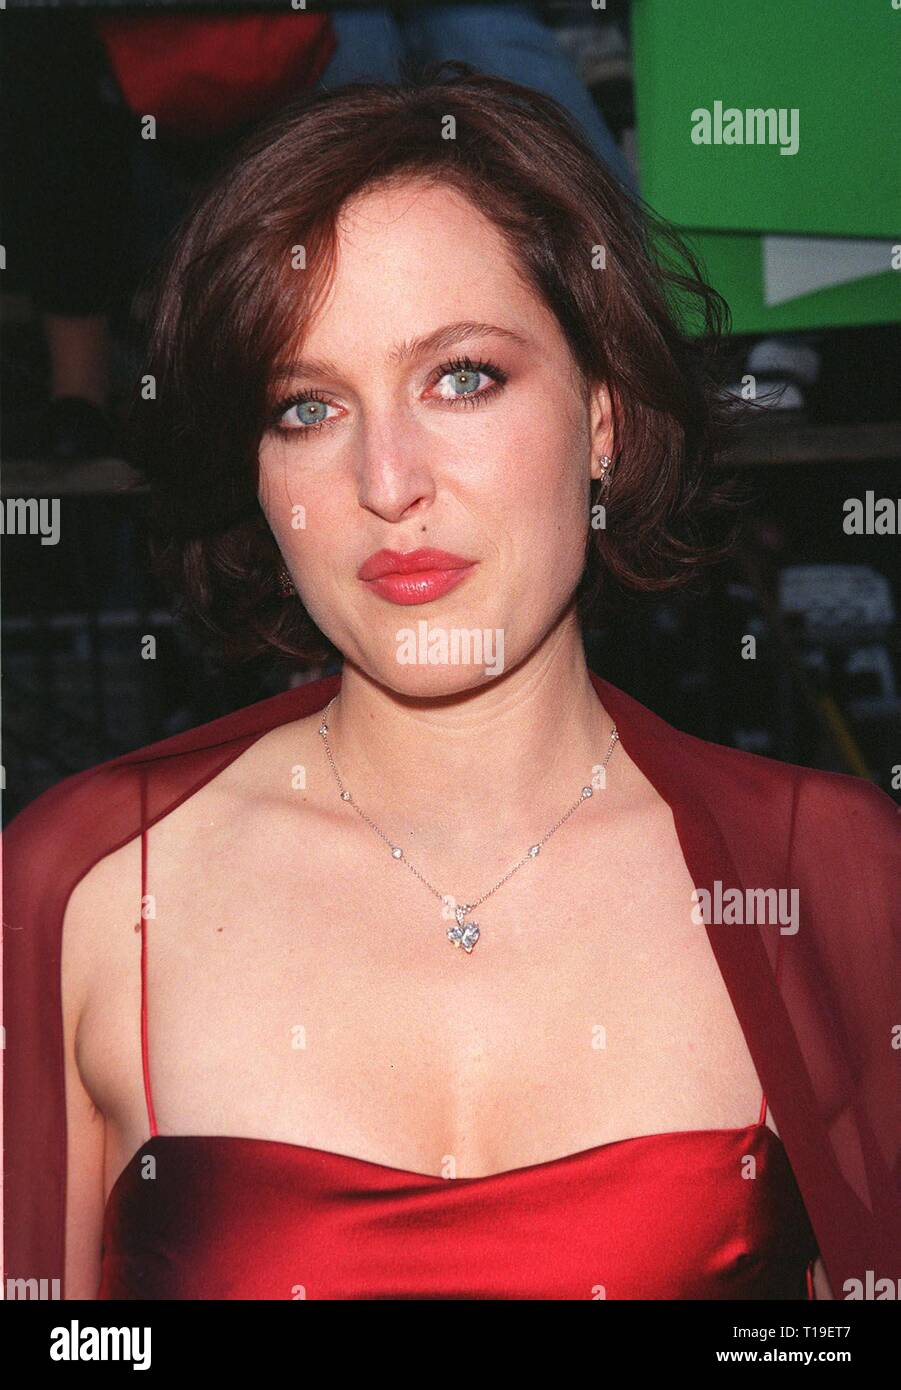 LOS ANGELES, CA - September 8, 2011:  Actress GILLIAN ANDERSON at the world premiere, in Los Angeles, of her new movie 'The X-Files.' - Stock Image